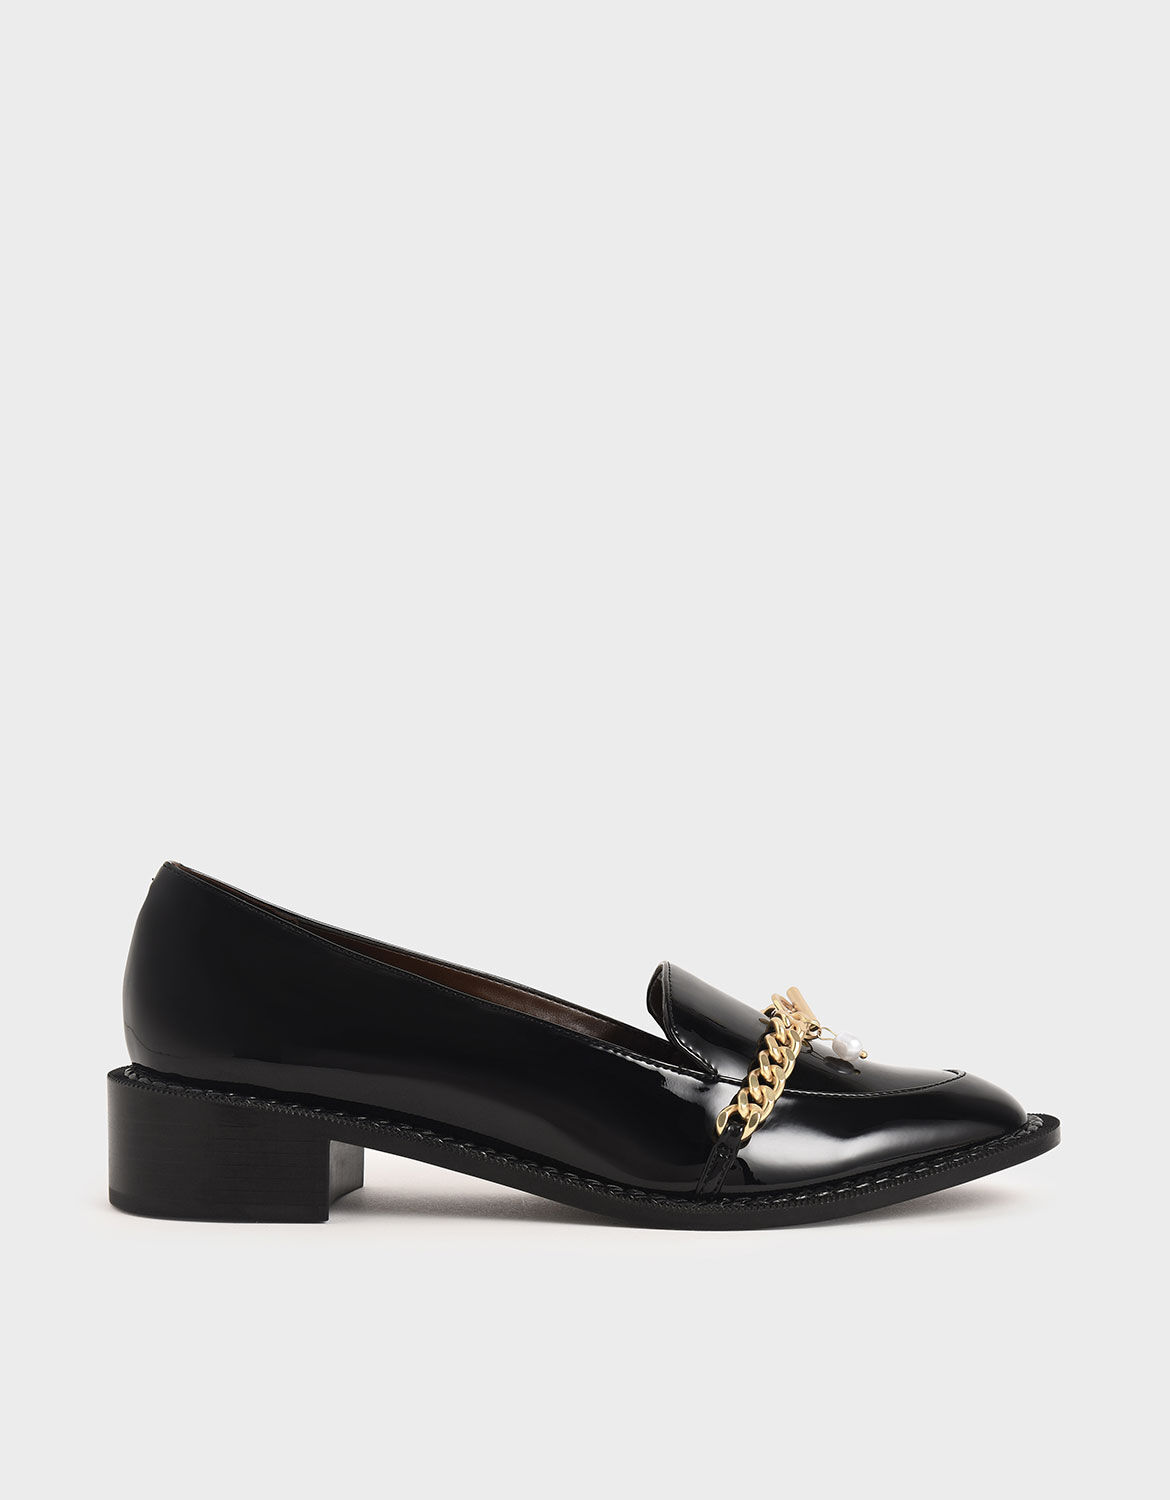 Black Patent Chain Link Loafers